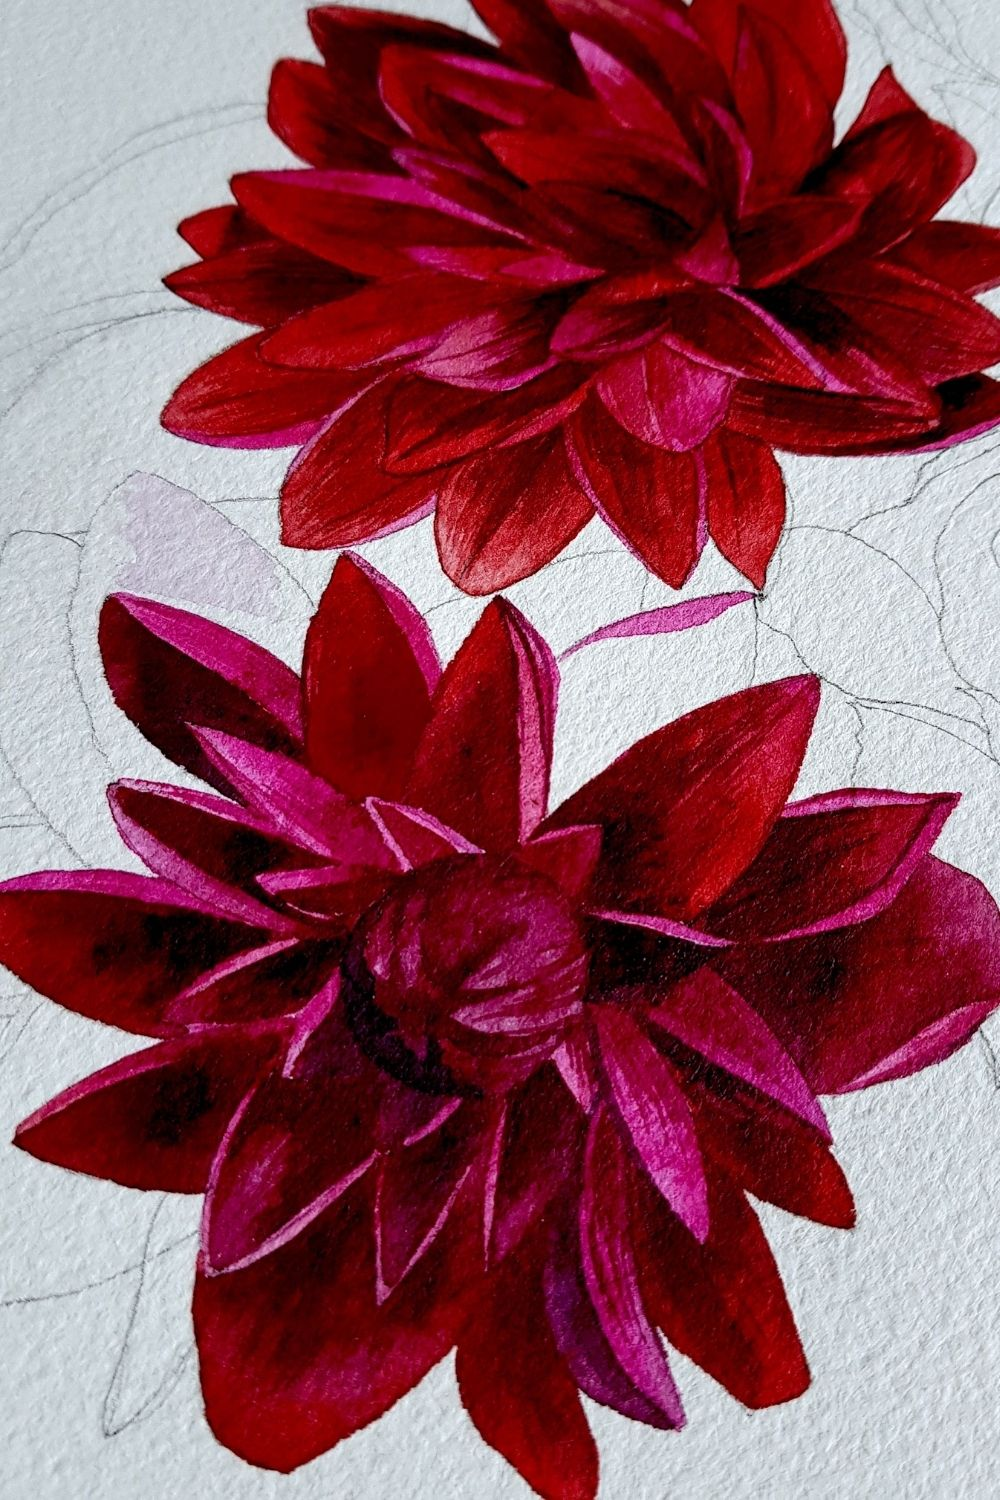 Red and deep burgundy red flower watercolour painting